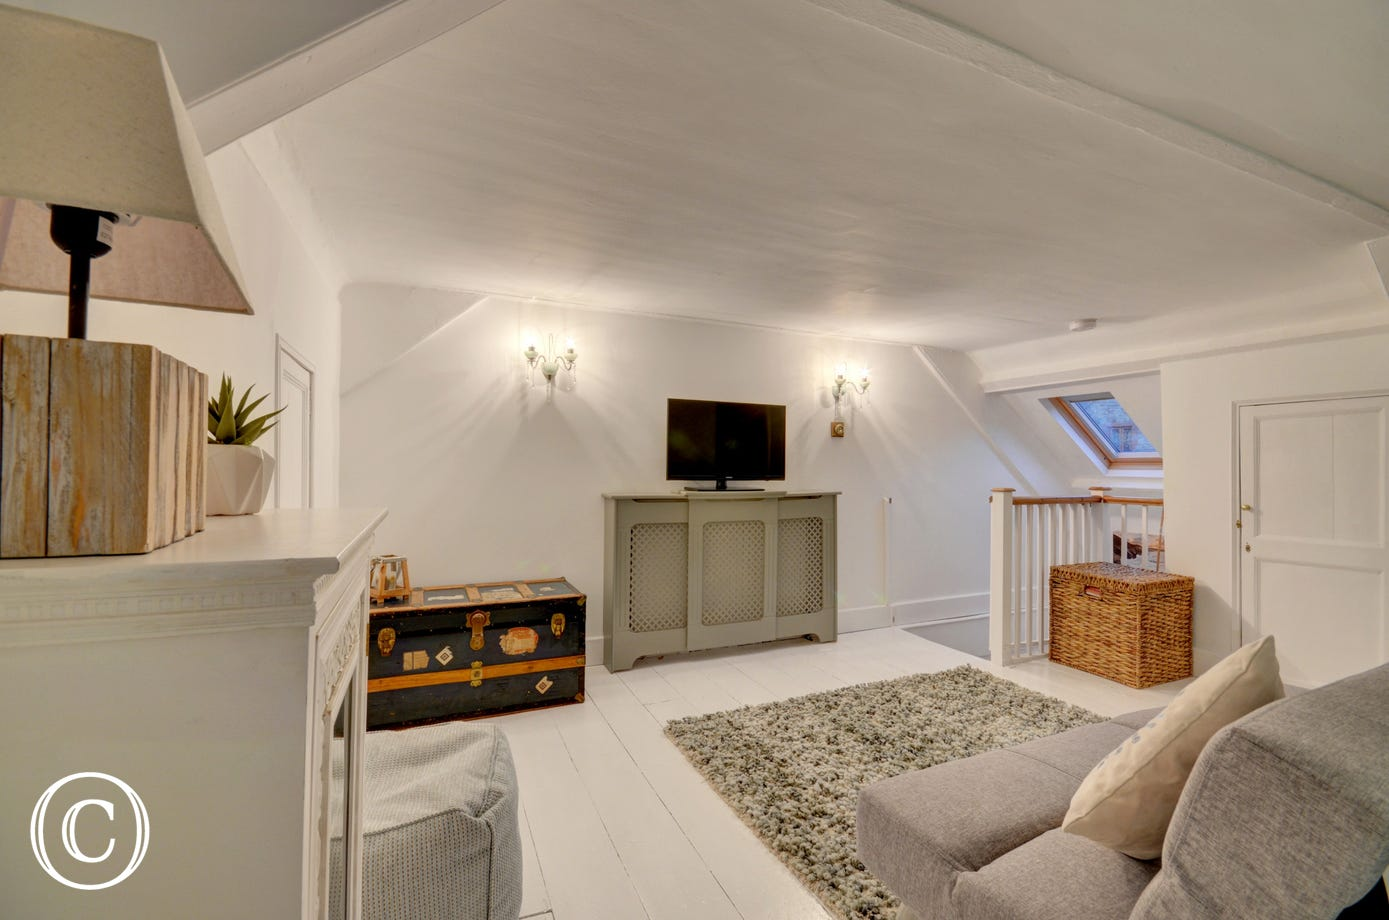 Children of all ages will love the attic snug room